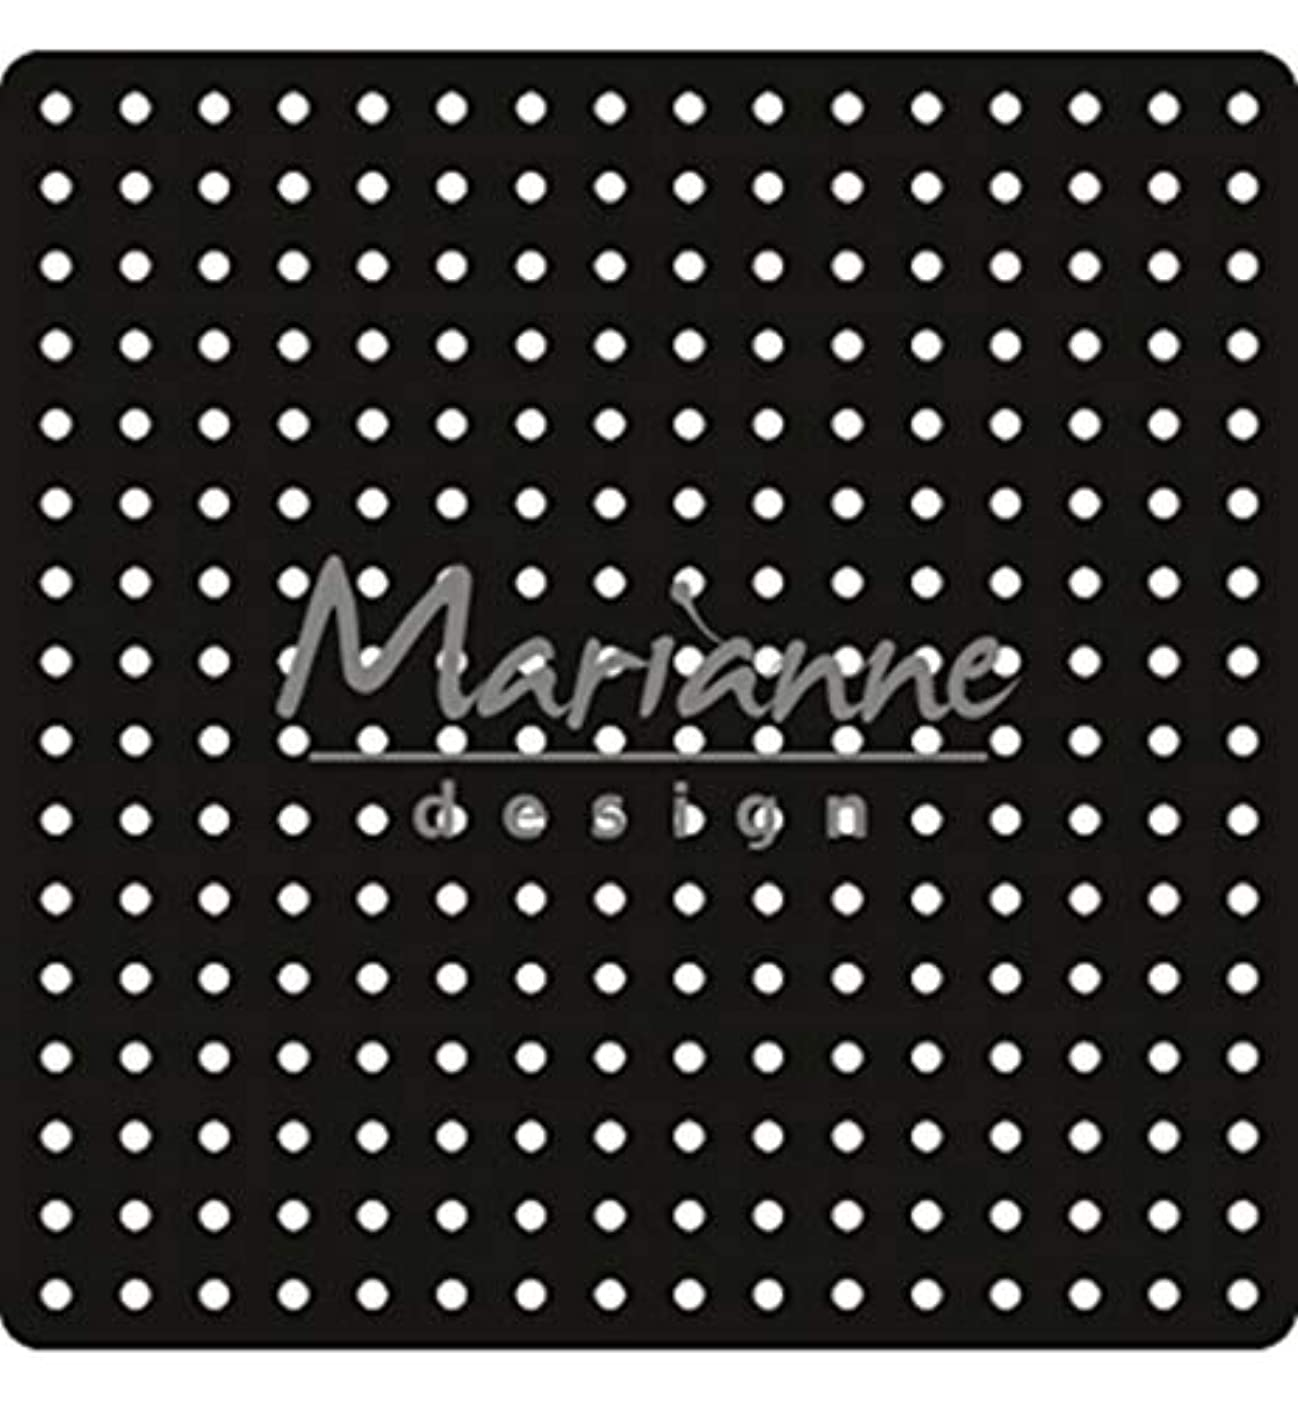 Marianne Design Craftables,Cross Stitch Cutting and Embossing Die for Craft Projects, Argent